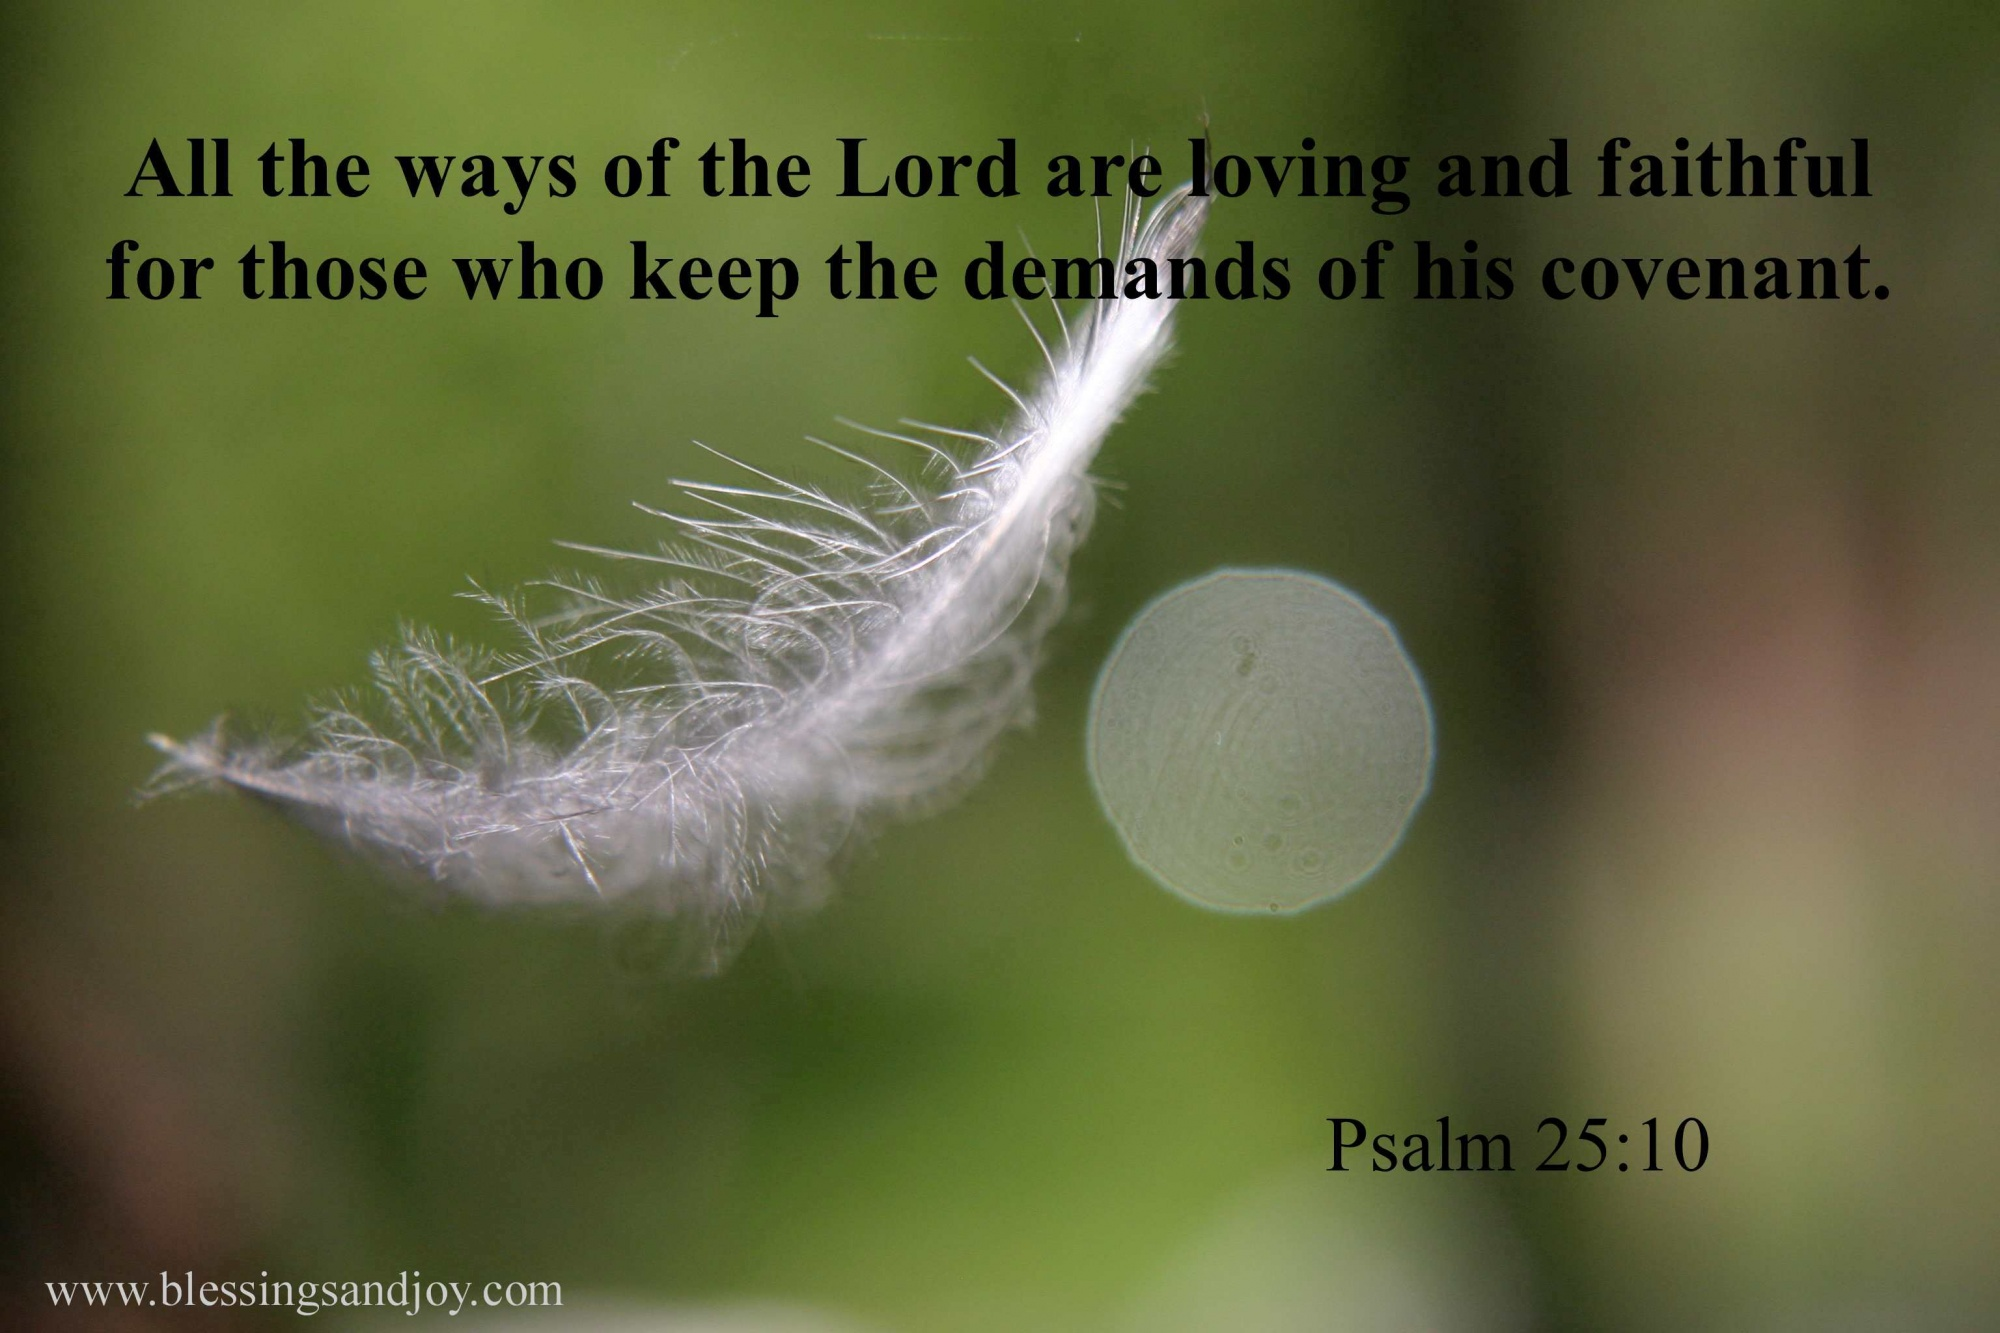 LOVE_Psalm_25_10_all_the_ways_of_the_Lord_are_loving.ch-41